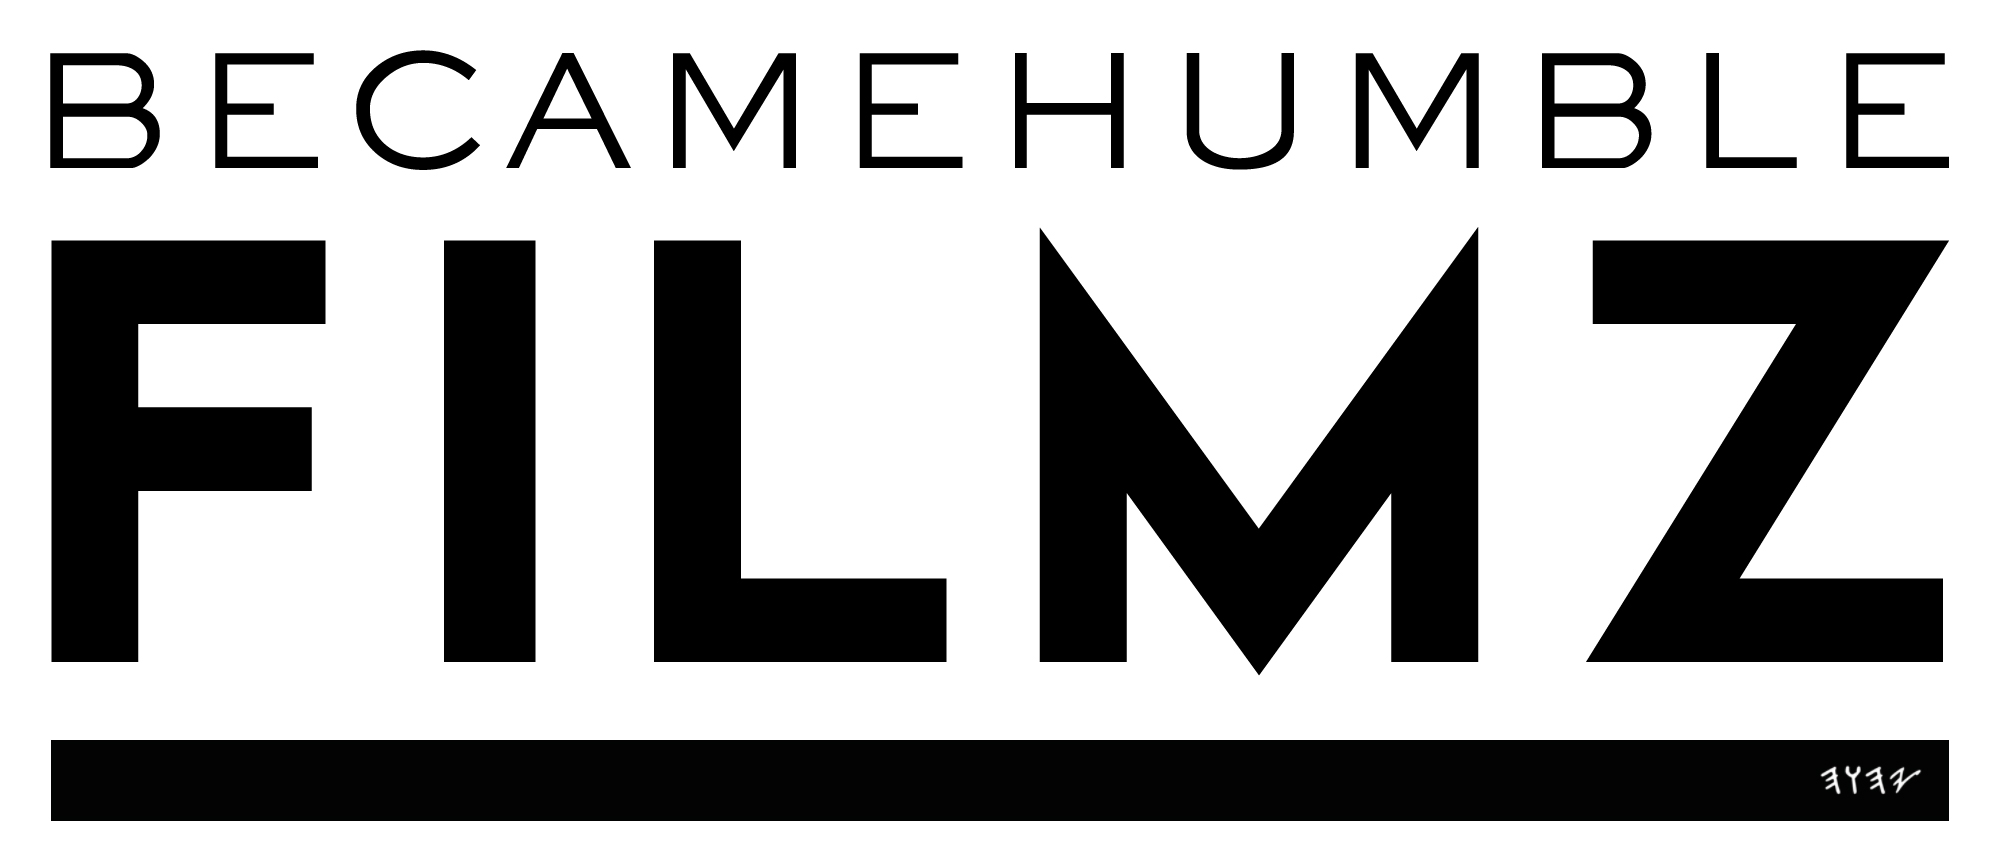 BECAME-HUMBLE-FILMZ-LOGO